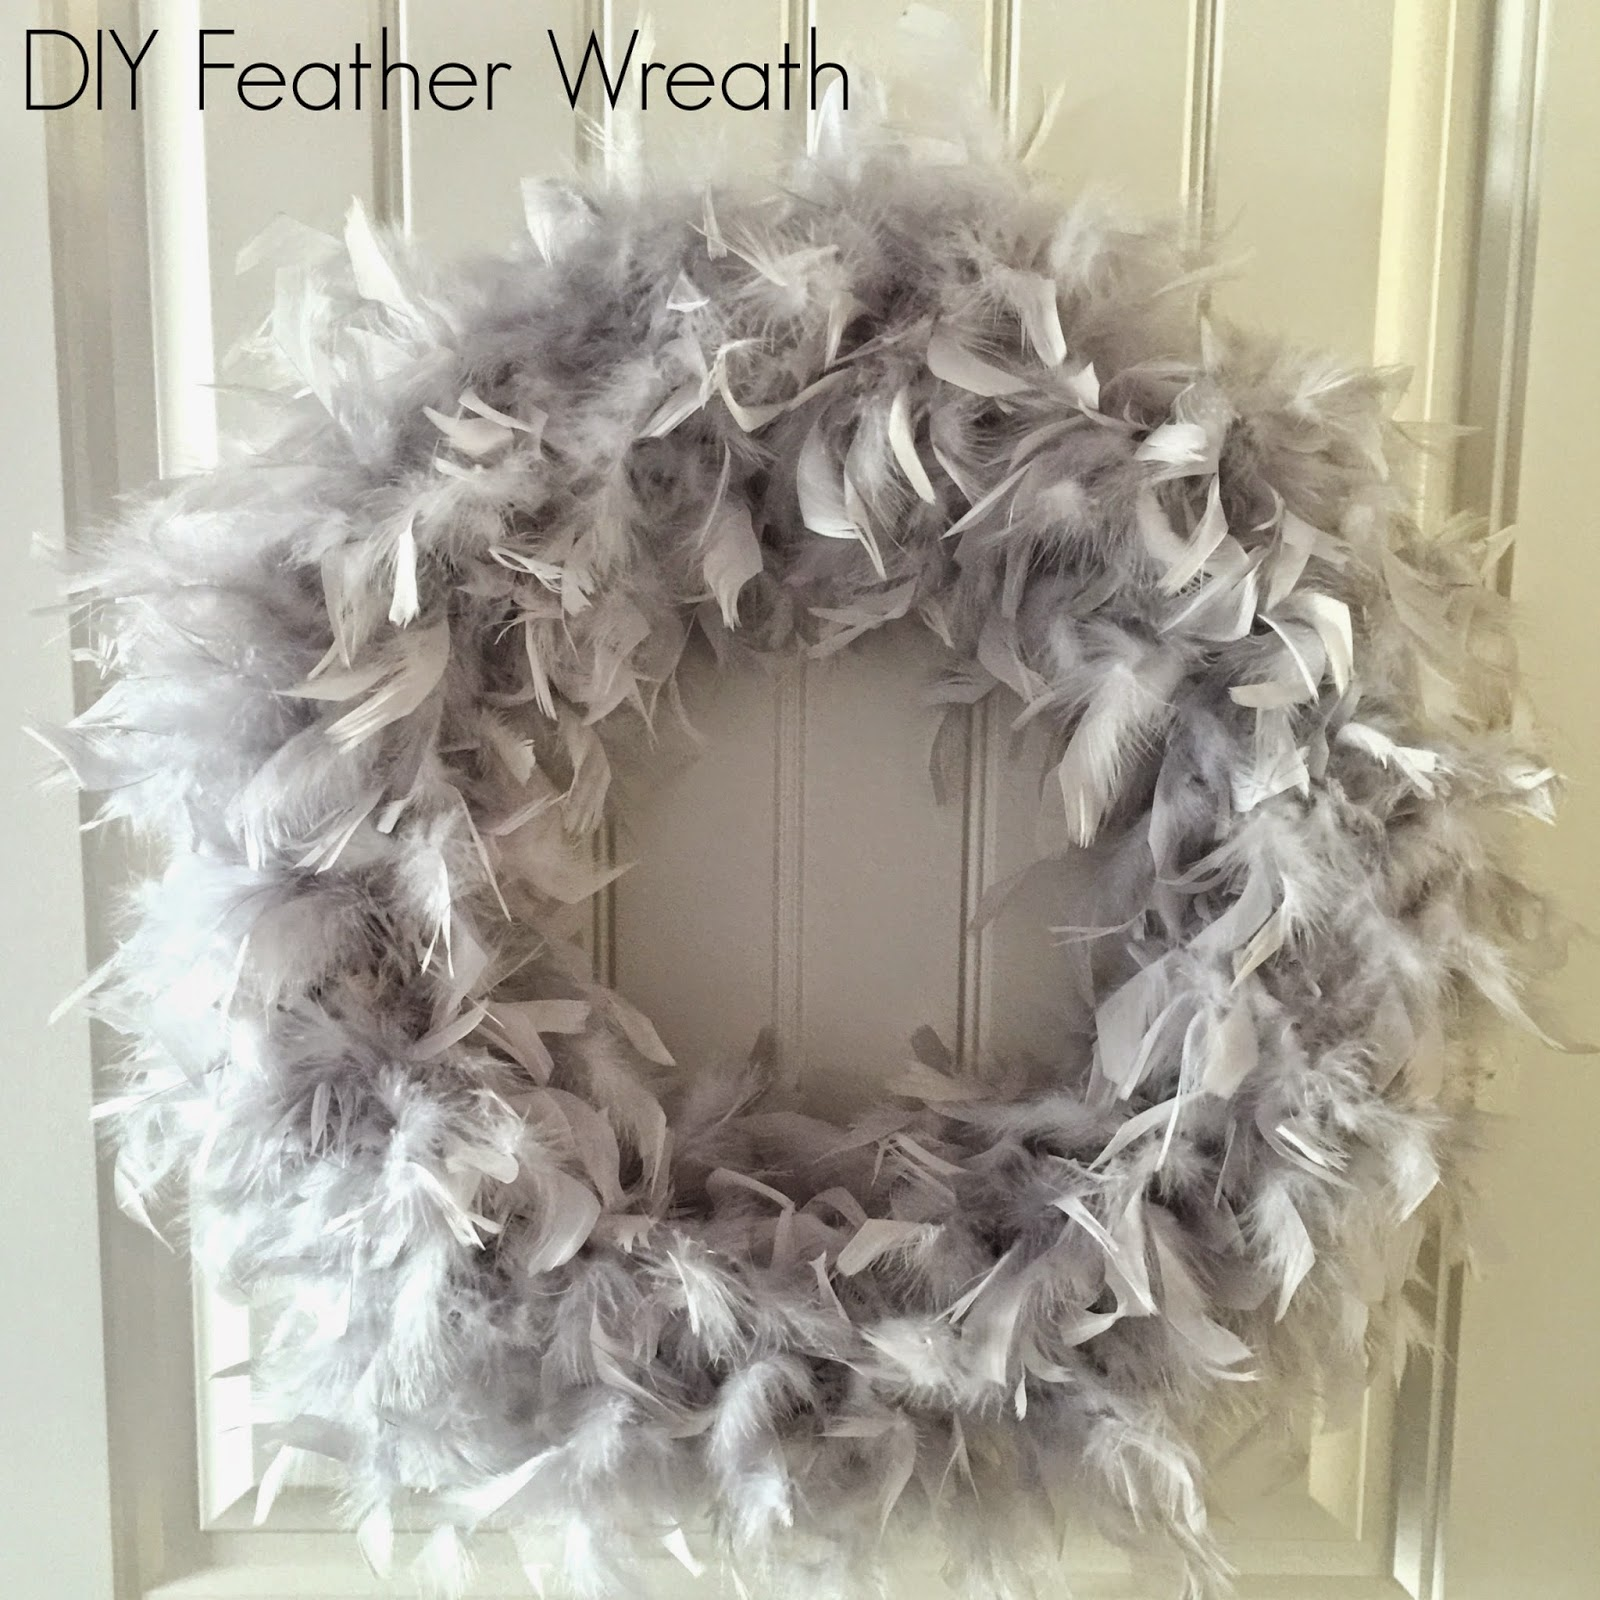 DIY Feather Wreath